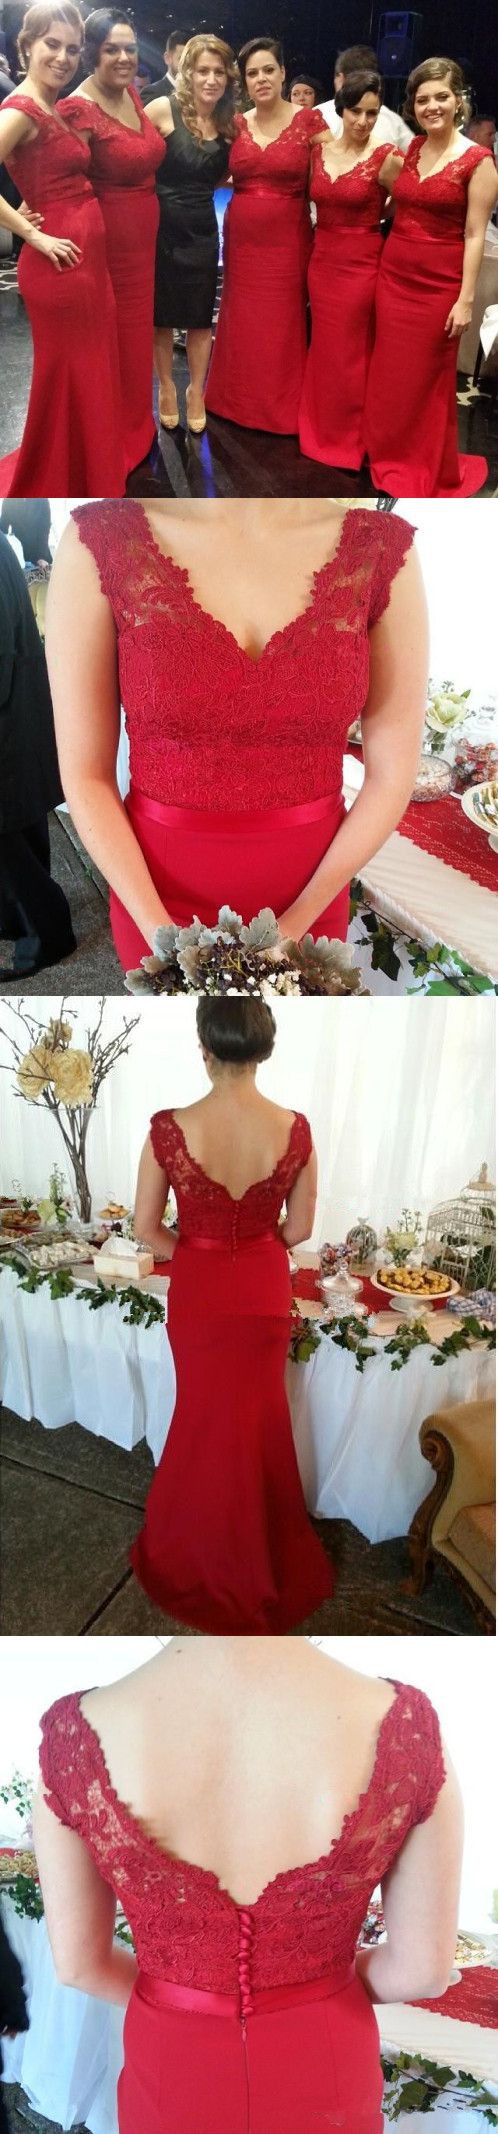 Red Mermaid Bridesmaid Dress with Lace,Long Bridesmaid Dresses F1171